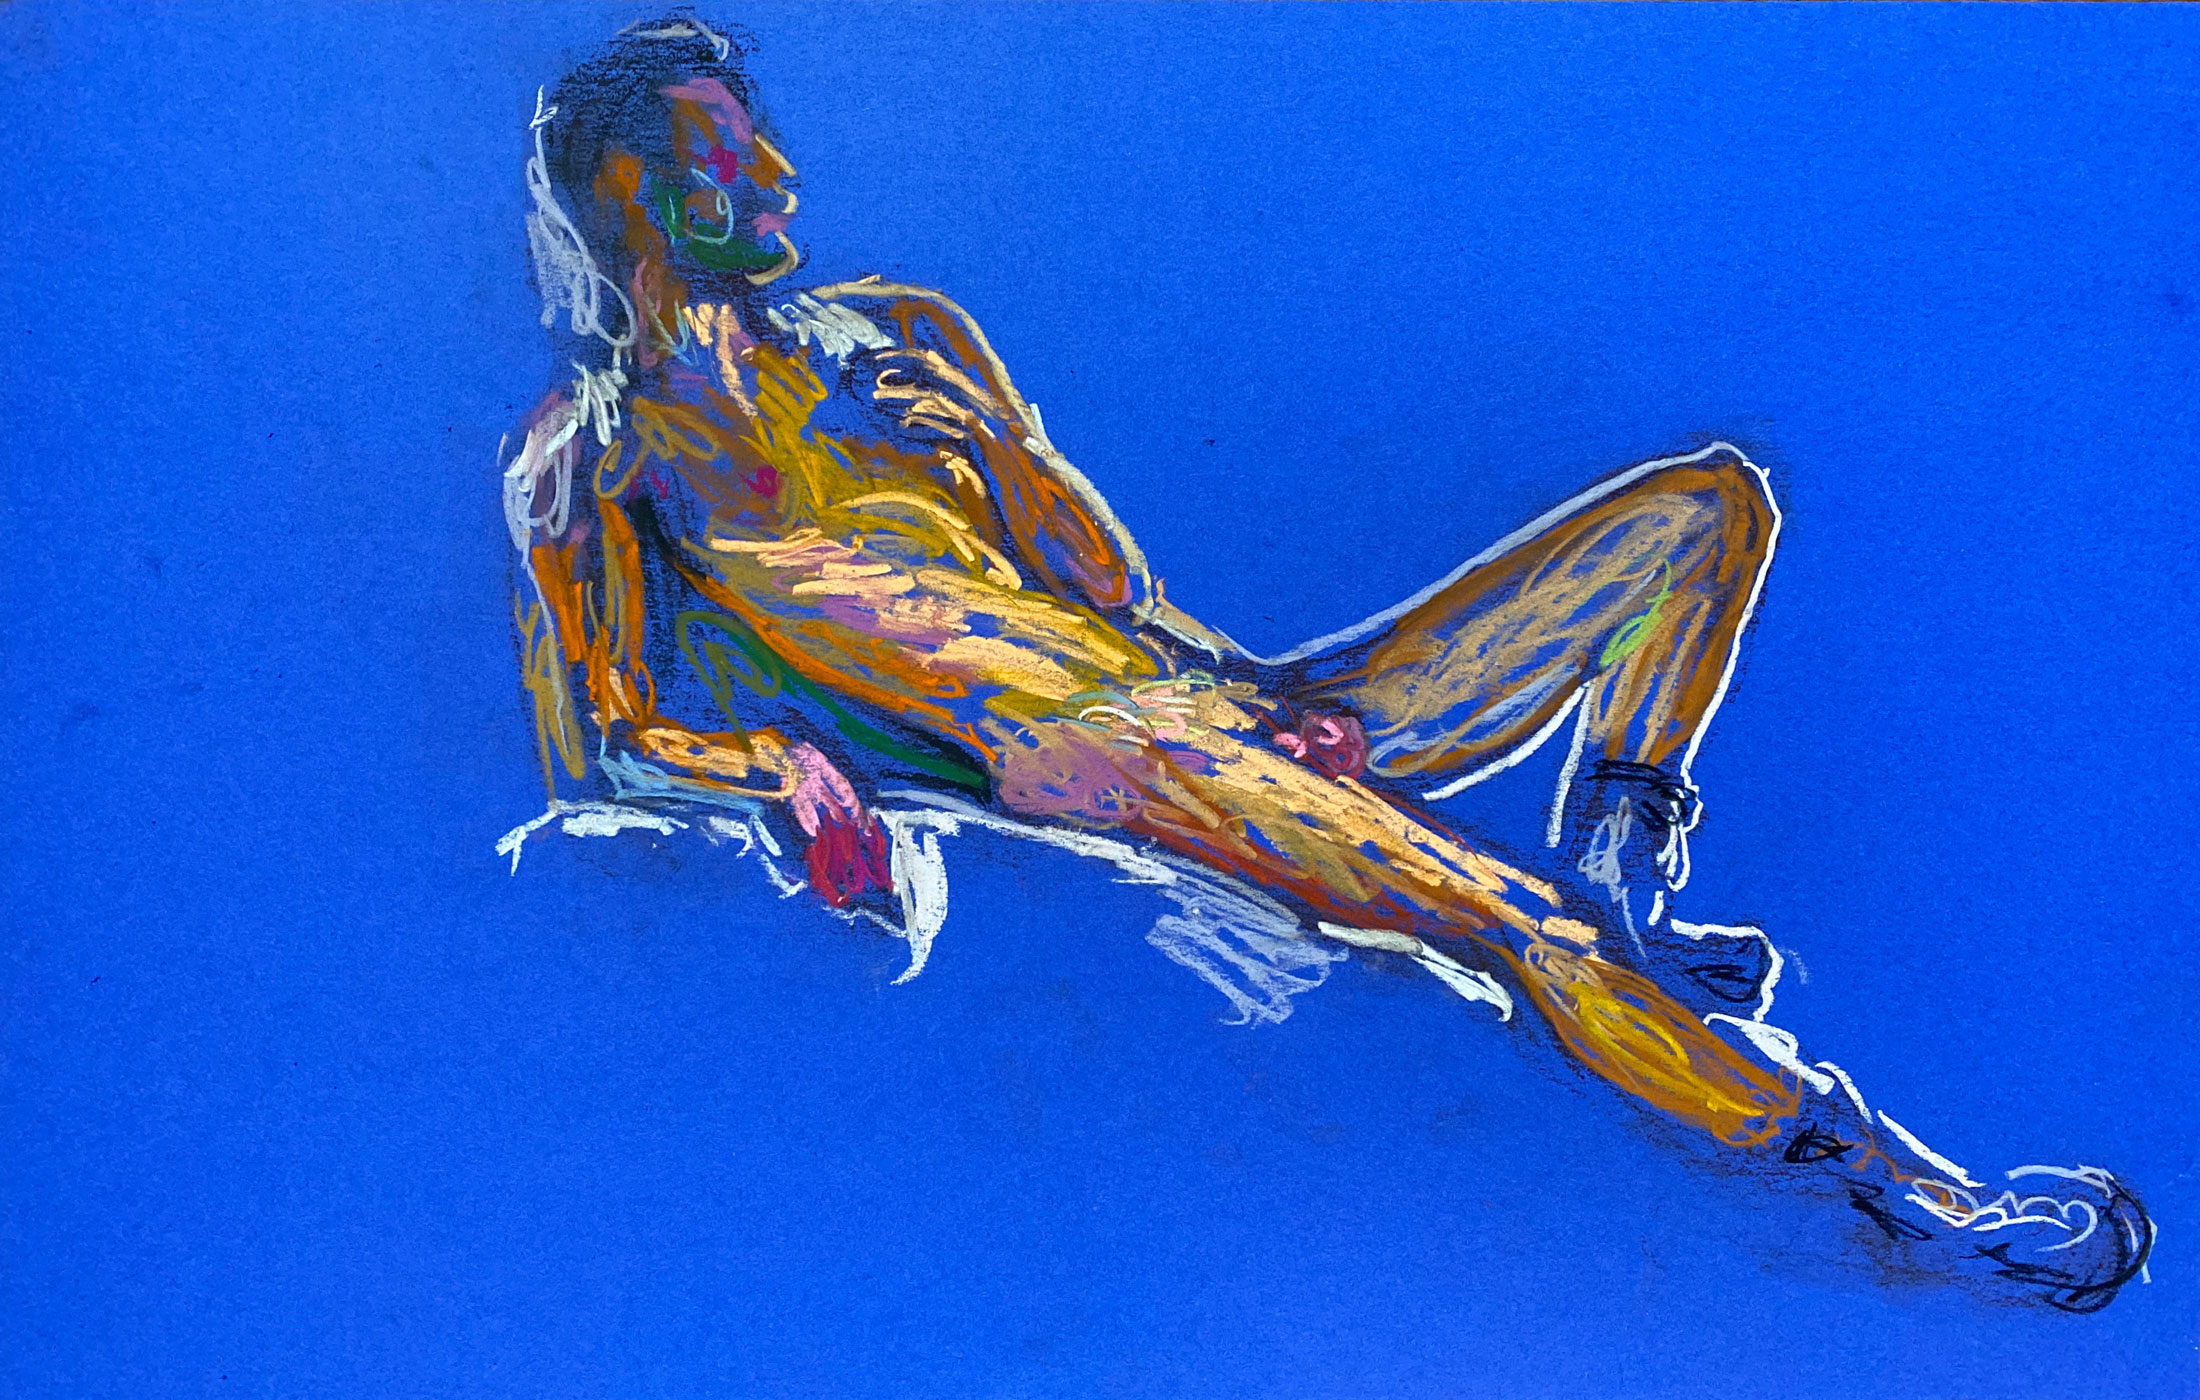 pastel drawing of male model reclining in leather boots